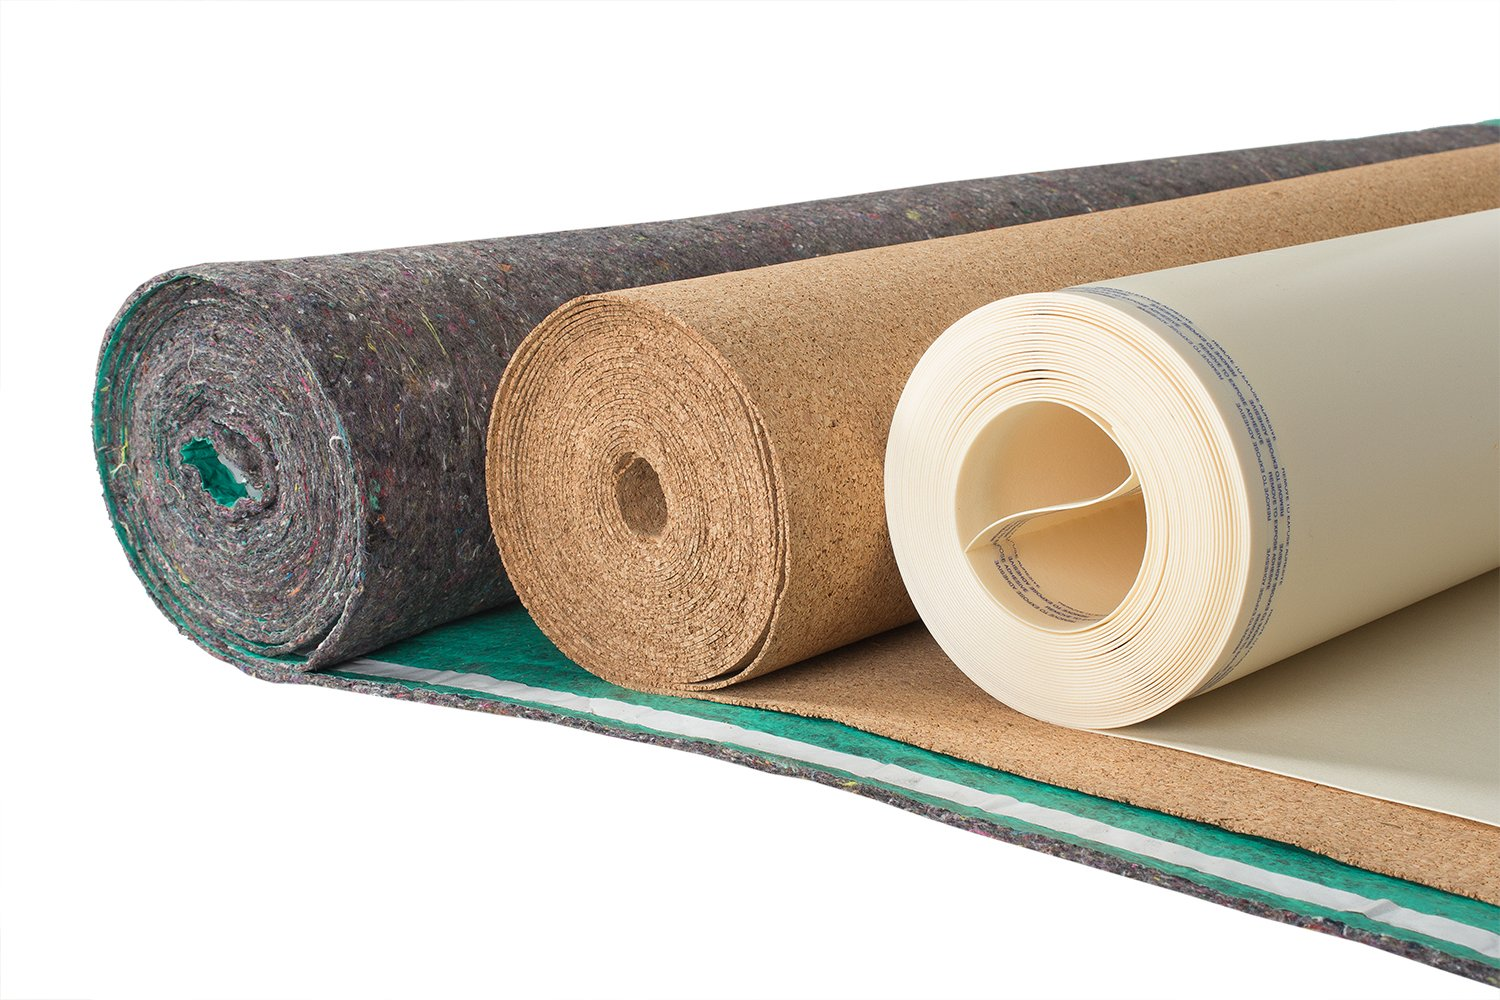 underlay-definition-function-types-and-beat-underlay-floor-combinations